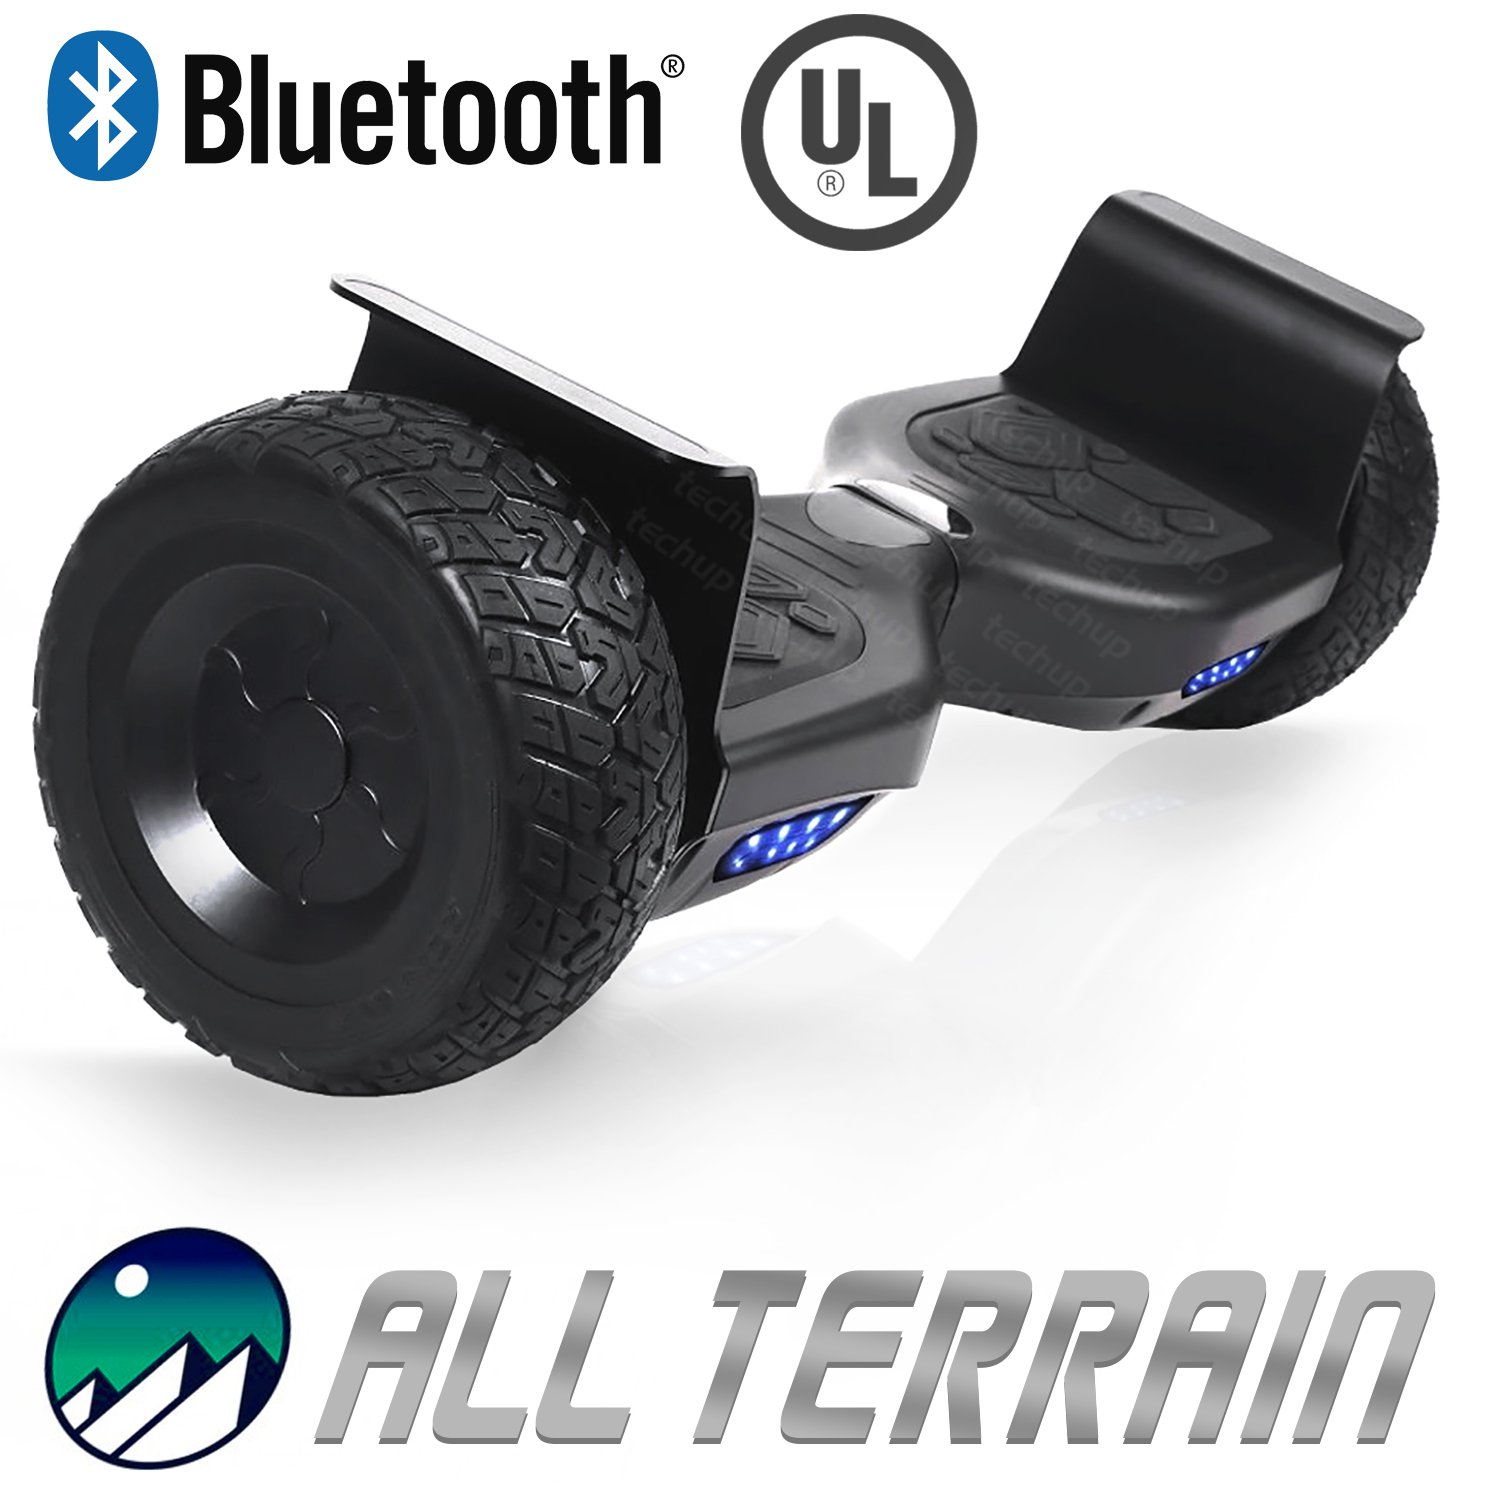 2017 Rover Bluetooth Hoverboard Self Balancing Scooter Off-Road UL 2272 Safe